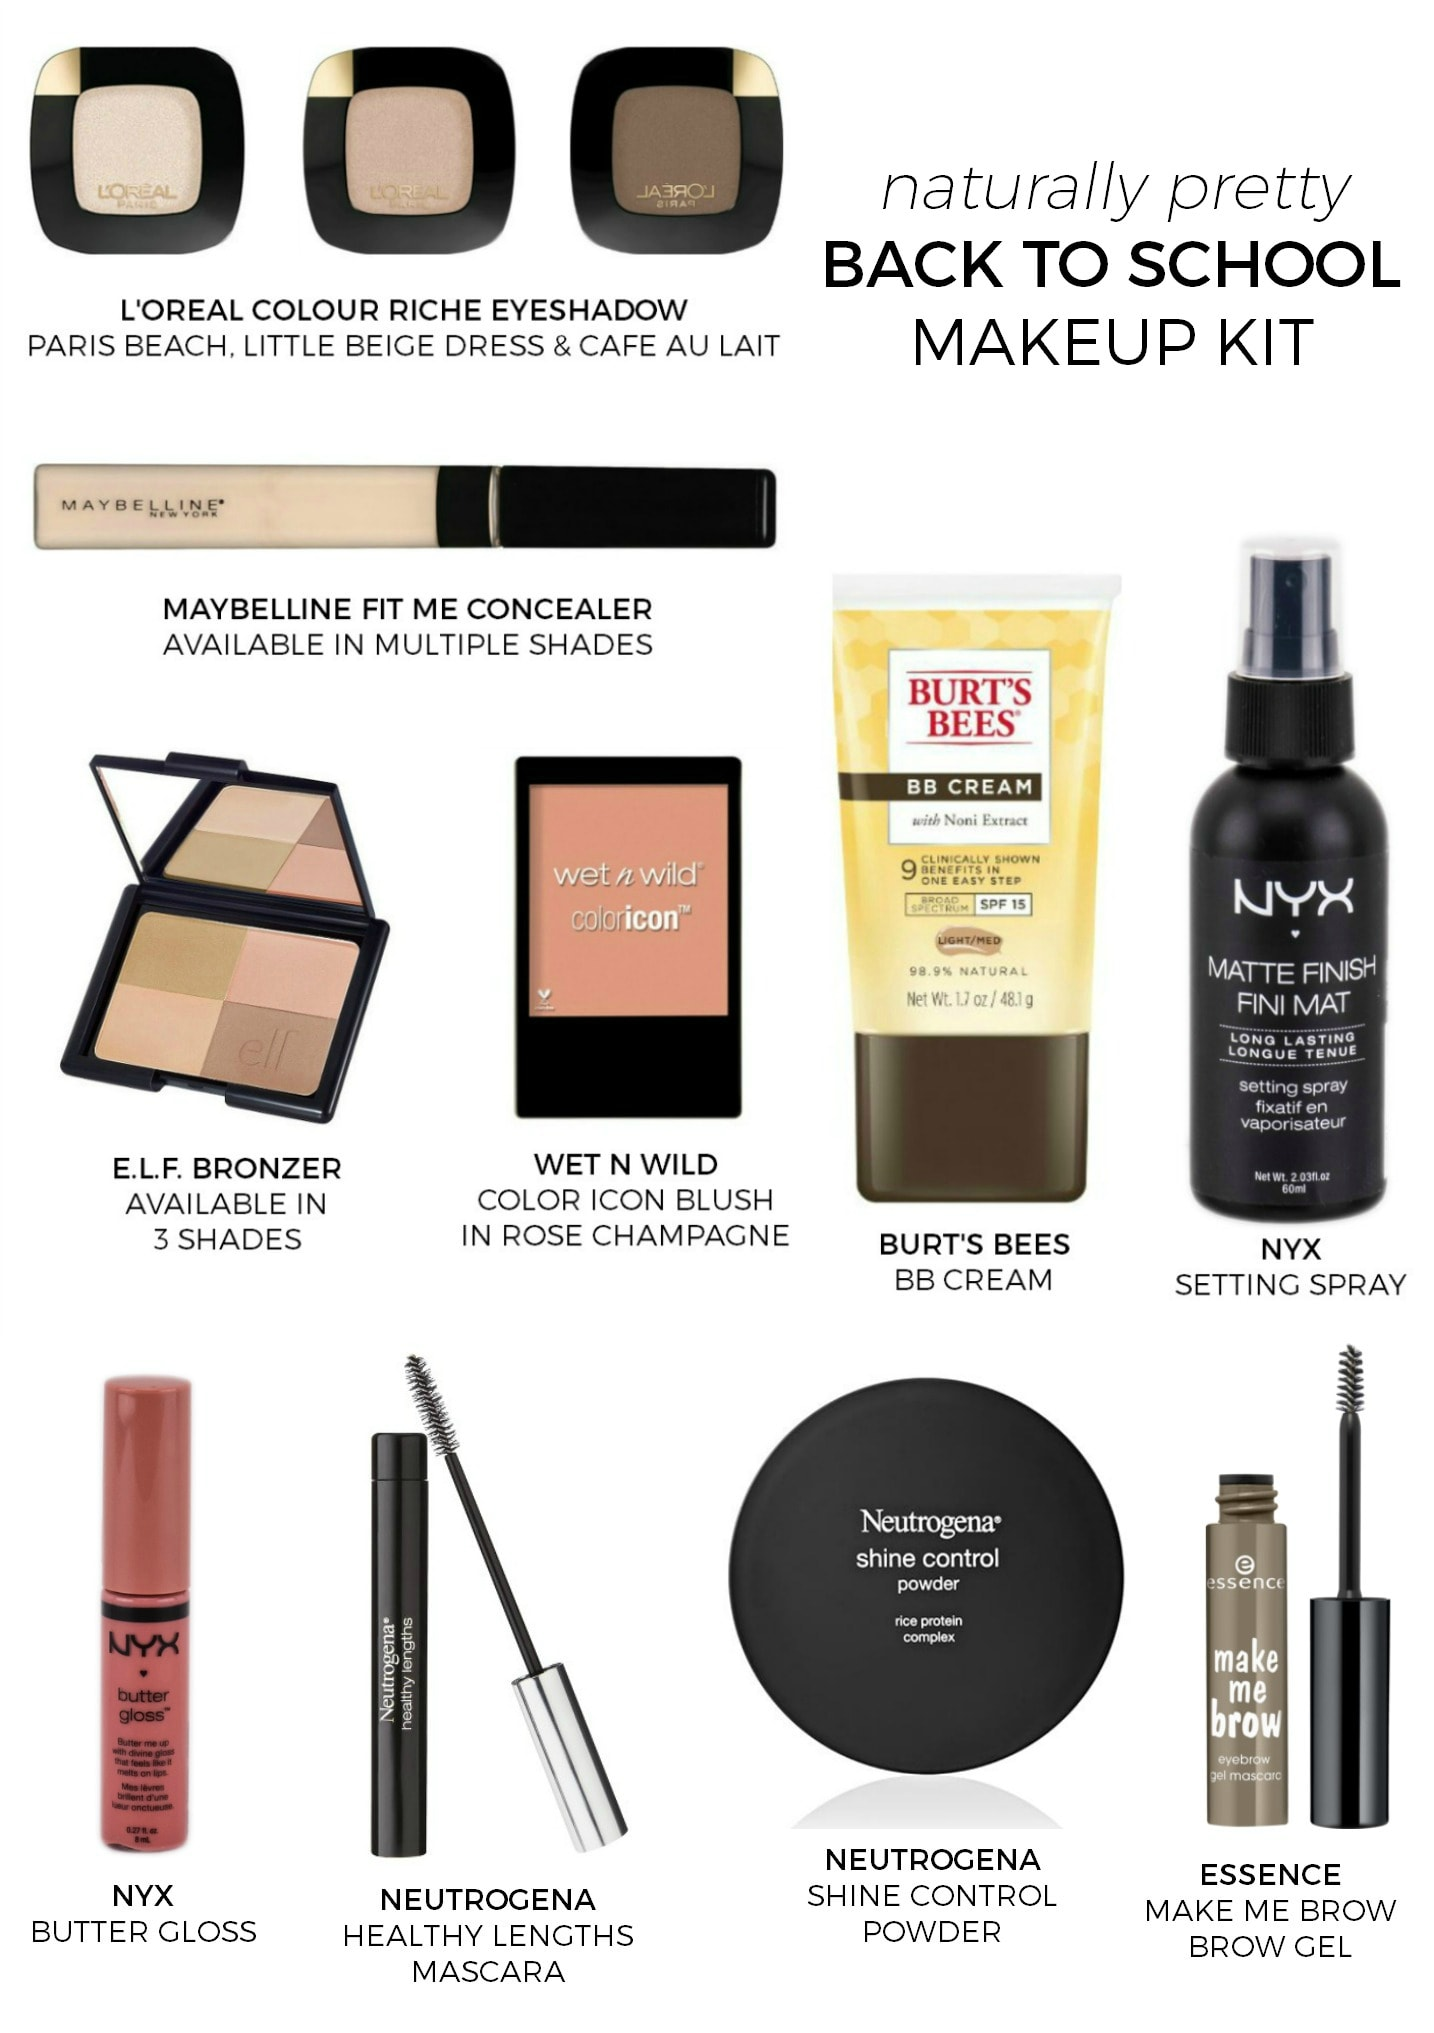 naturally-pretty-back-to-school-makeup-kit-natural-girl